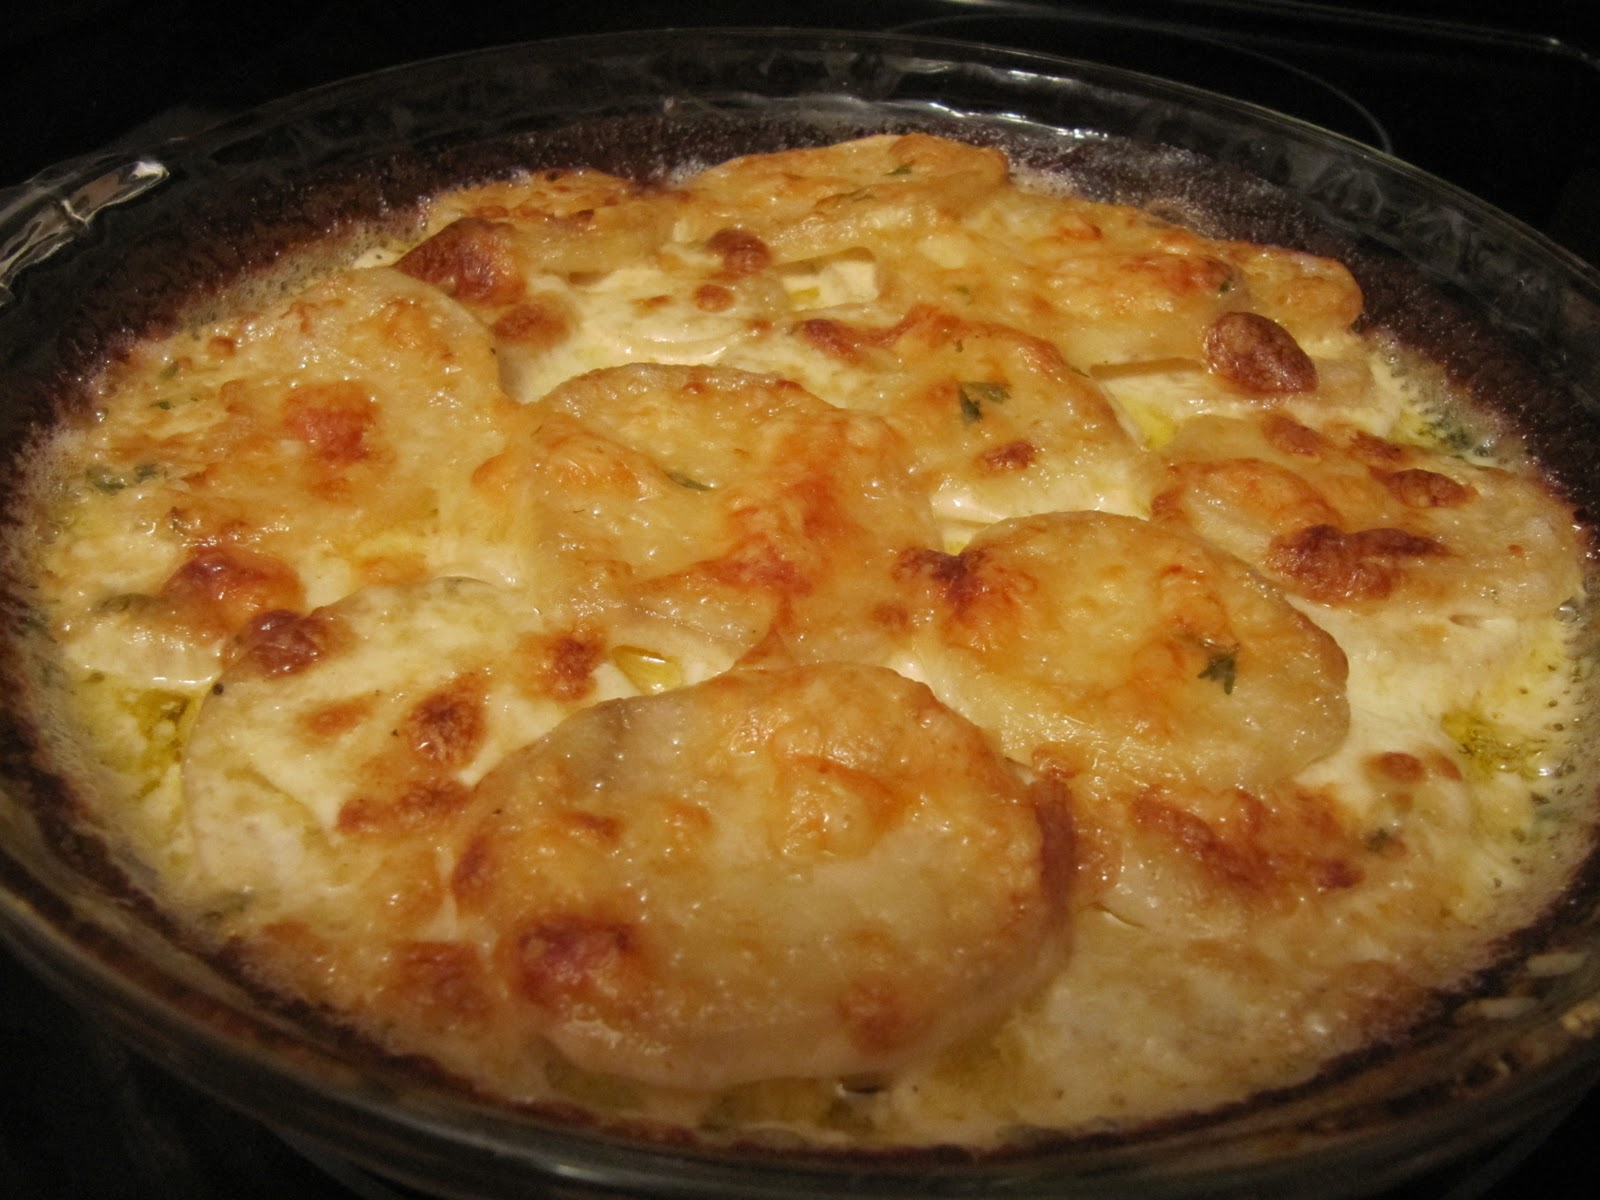 Cookin' in Anne's Kitchen: Anne's Potatoes au Gratin